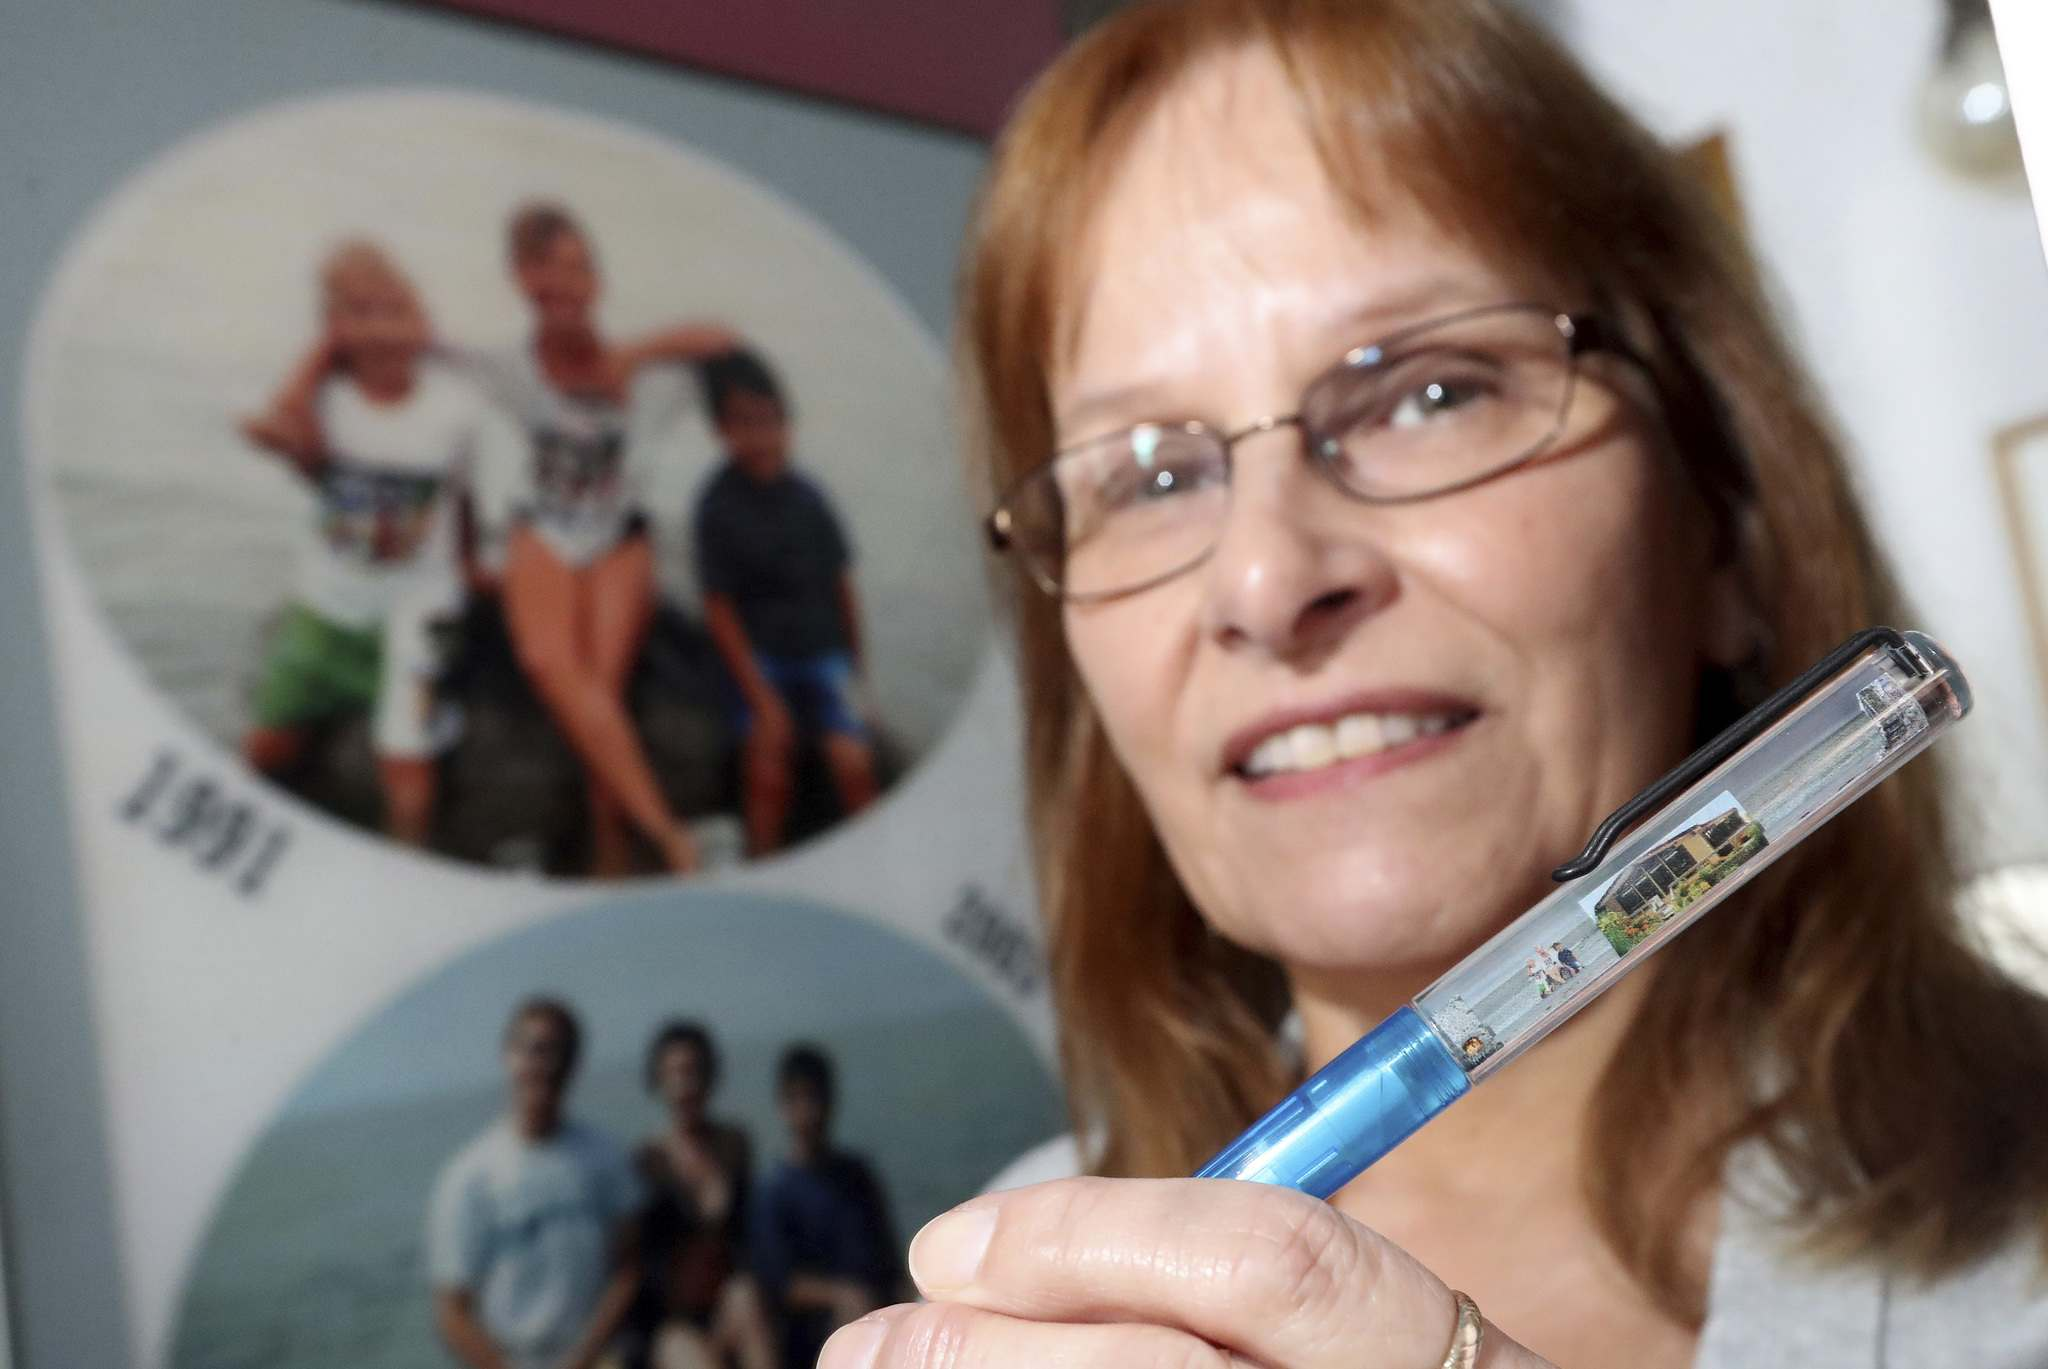 TREVOR HAGAN / WINNIPEG FREE PRESS</p><p>Her son, nephew and niece on a pen she custom ordered.</p></p>